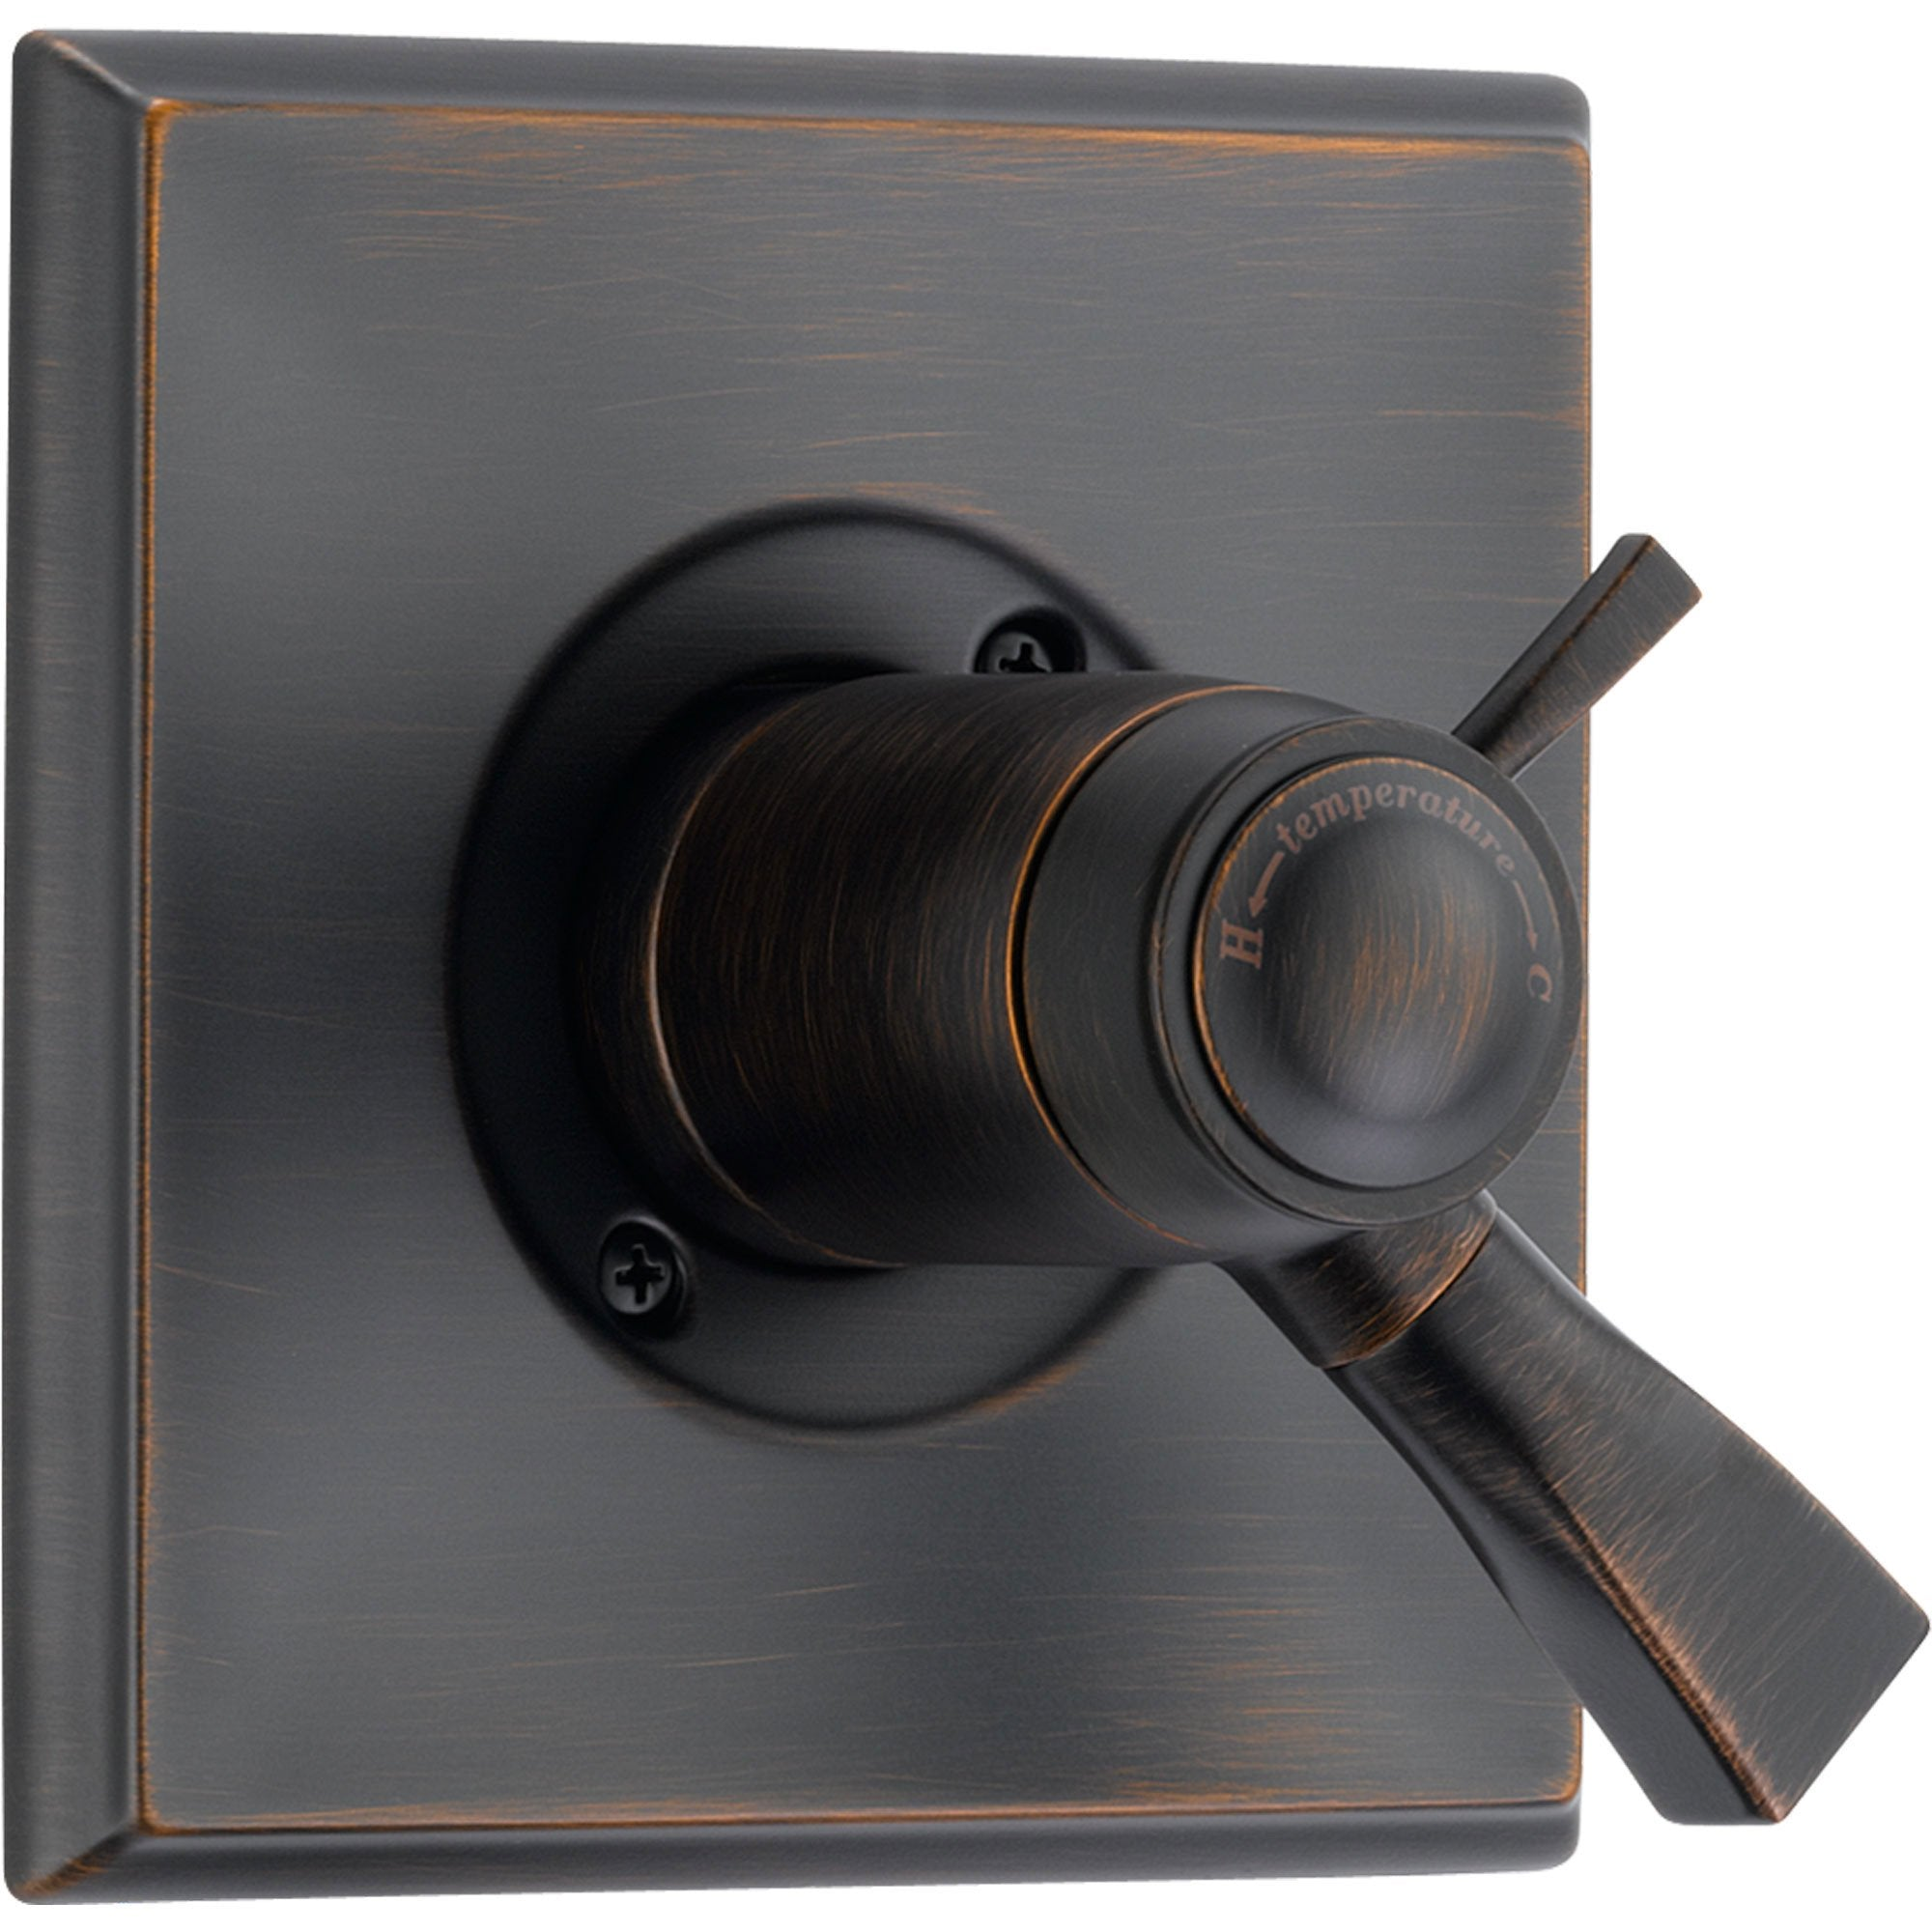 Delta Dryden Venetian Bronze Thermostatic Shower Valve Dual Control Trim 457065